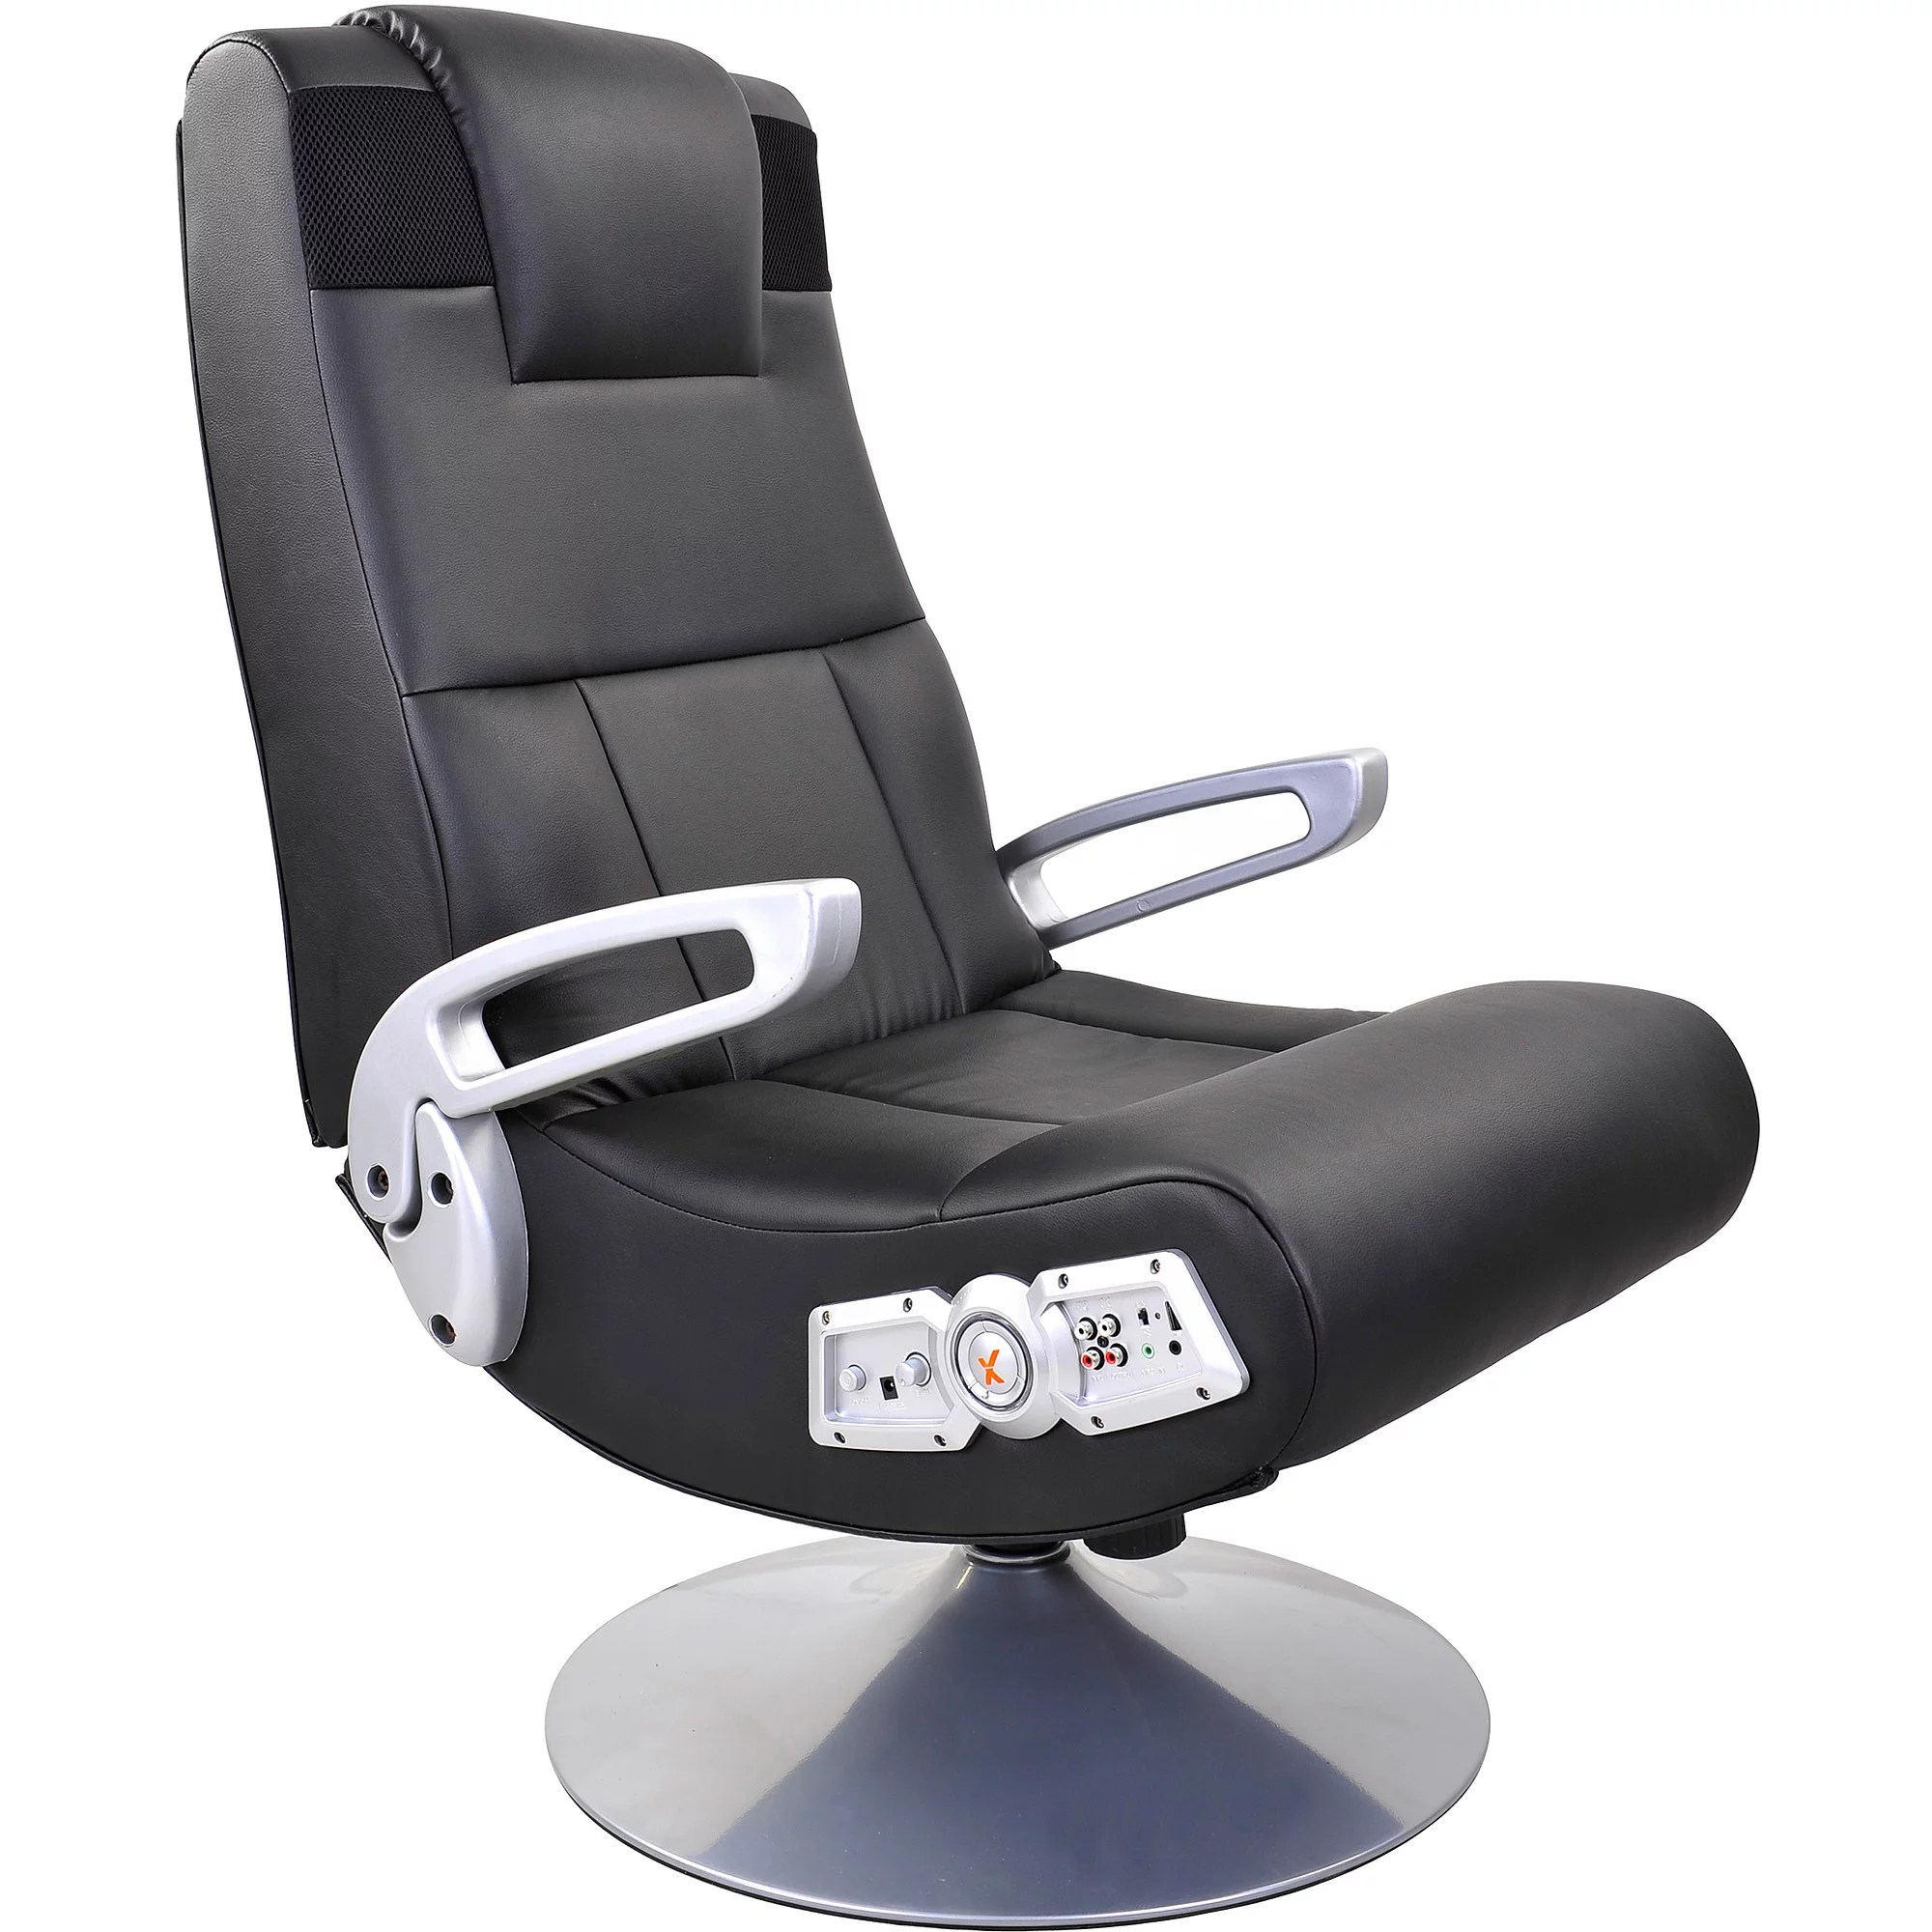 Game Chair With Speakers X Rocker Pedestal Gaming Chair Rocker With Bluetooth Technology